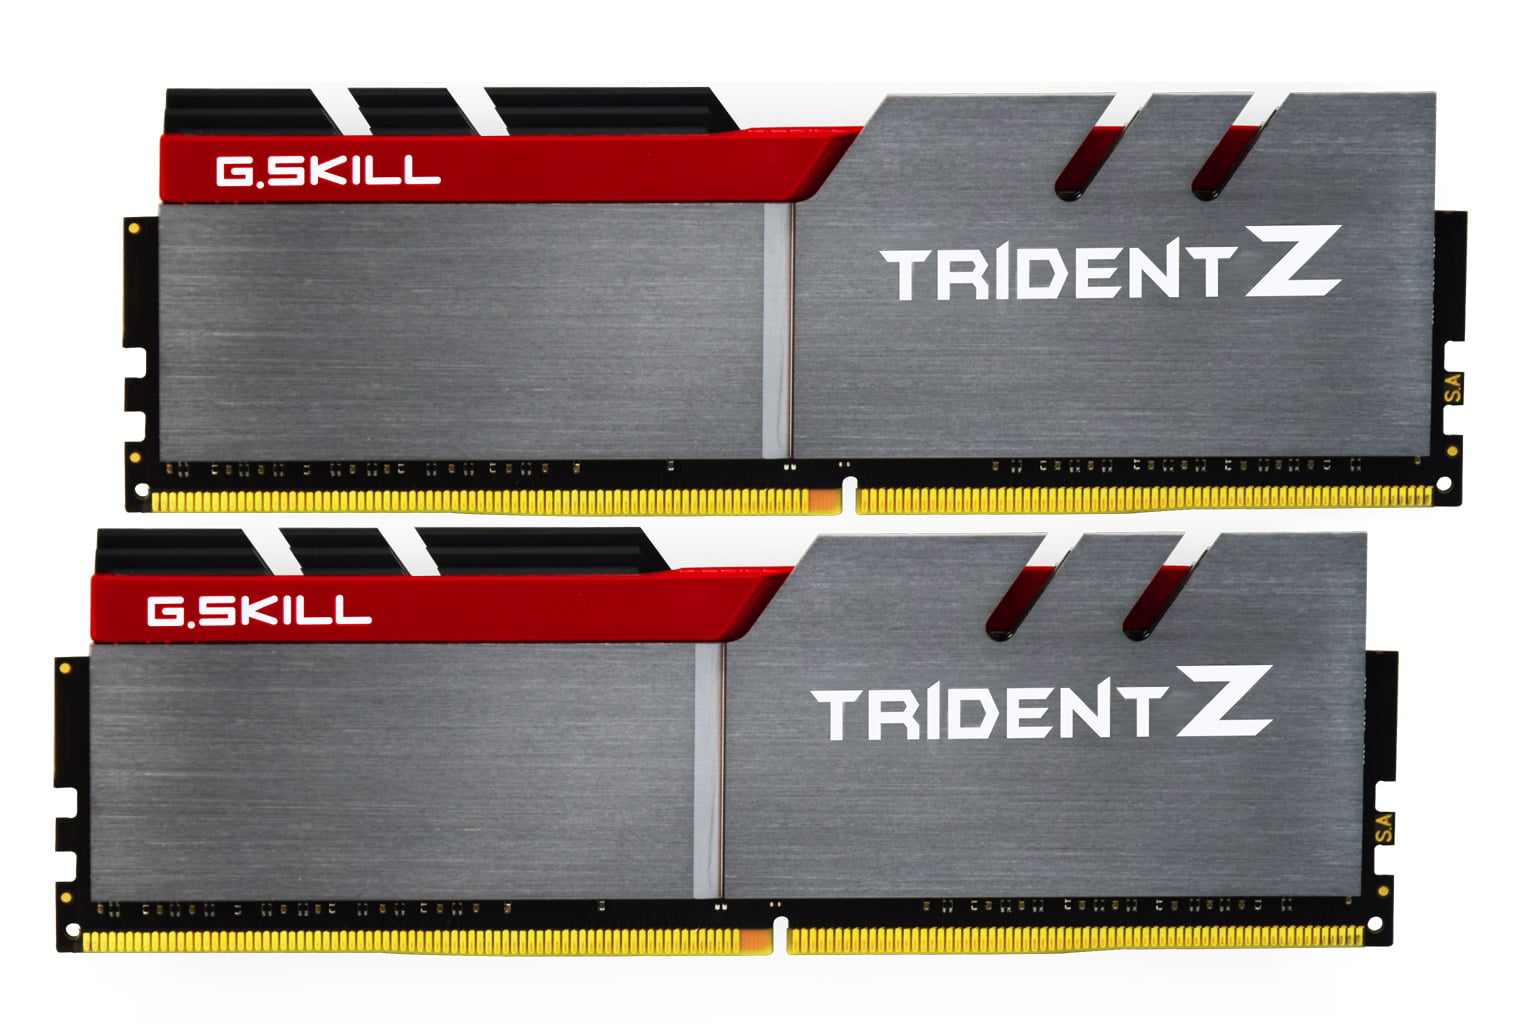 32GB G.Skill DDR4 Trident Z 3200Mhz PC4-25600 CL14 (14-14-14-34) 1.35V Dual Channel Kit (2x16GB)